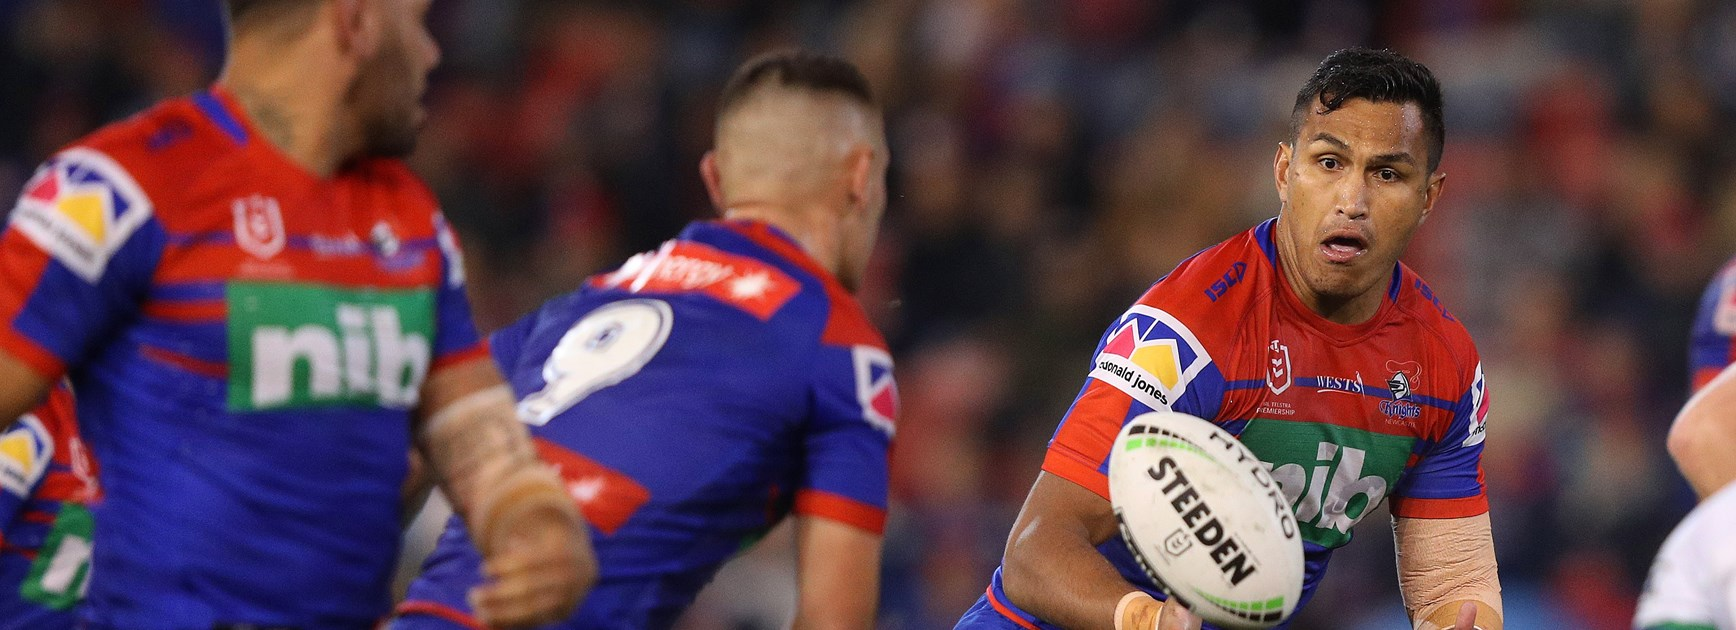 Troops chase NRL start despite Cup loss to Magpies